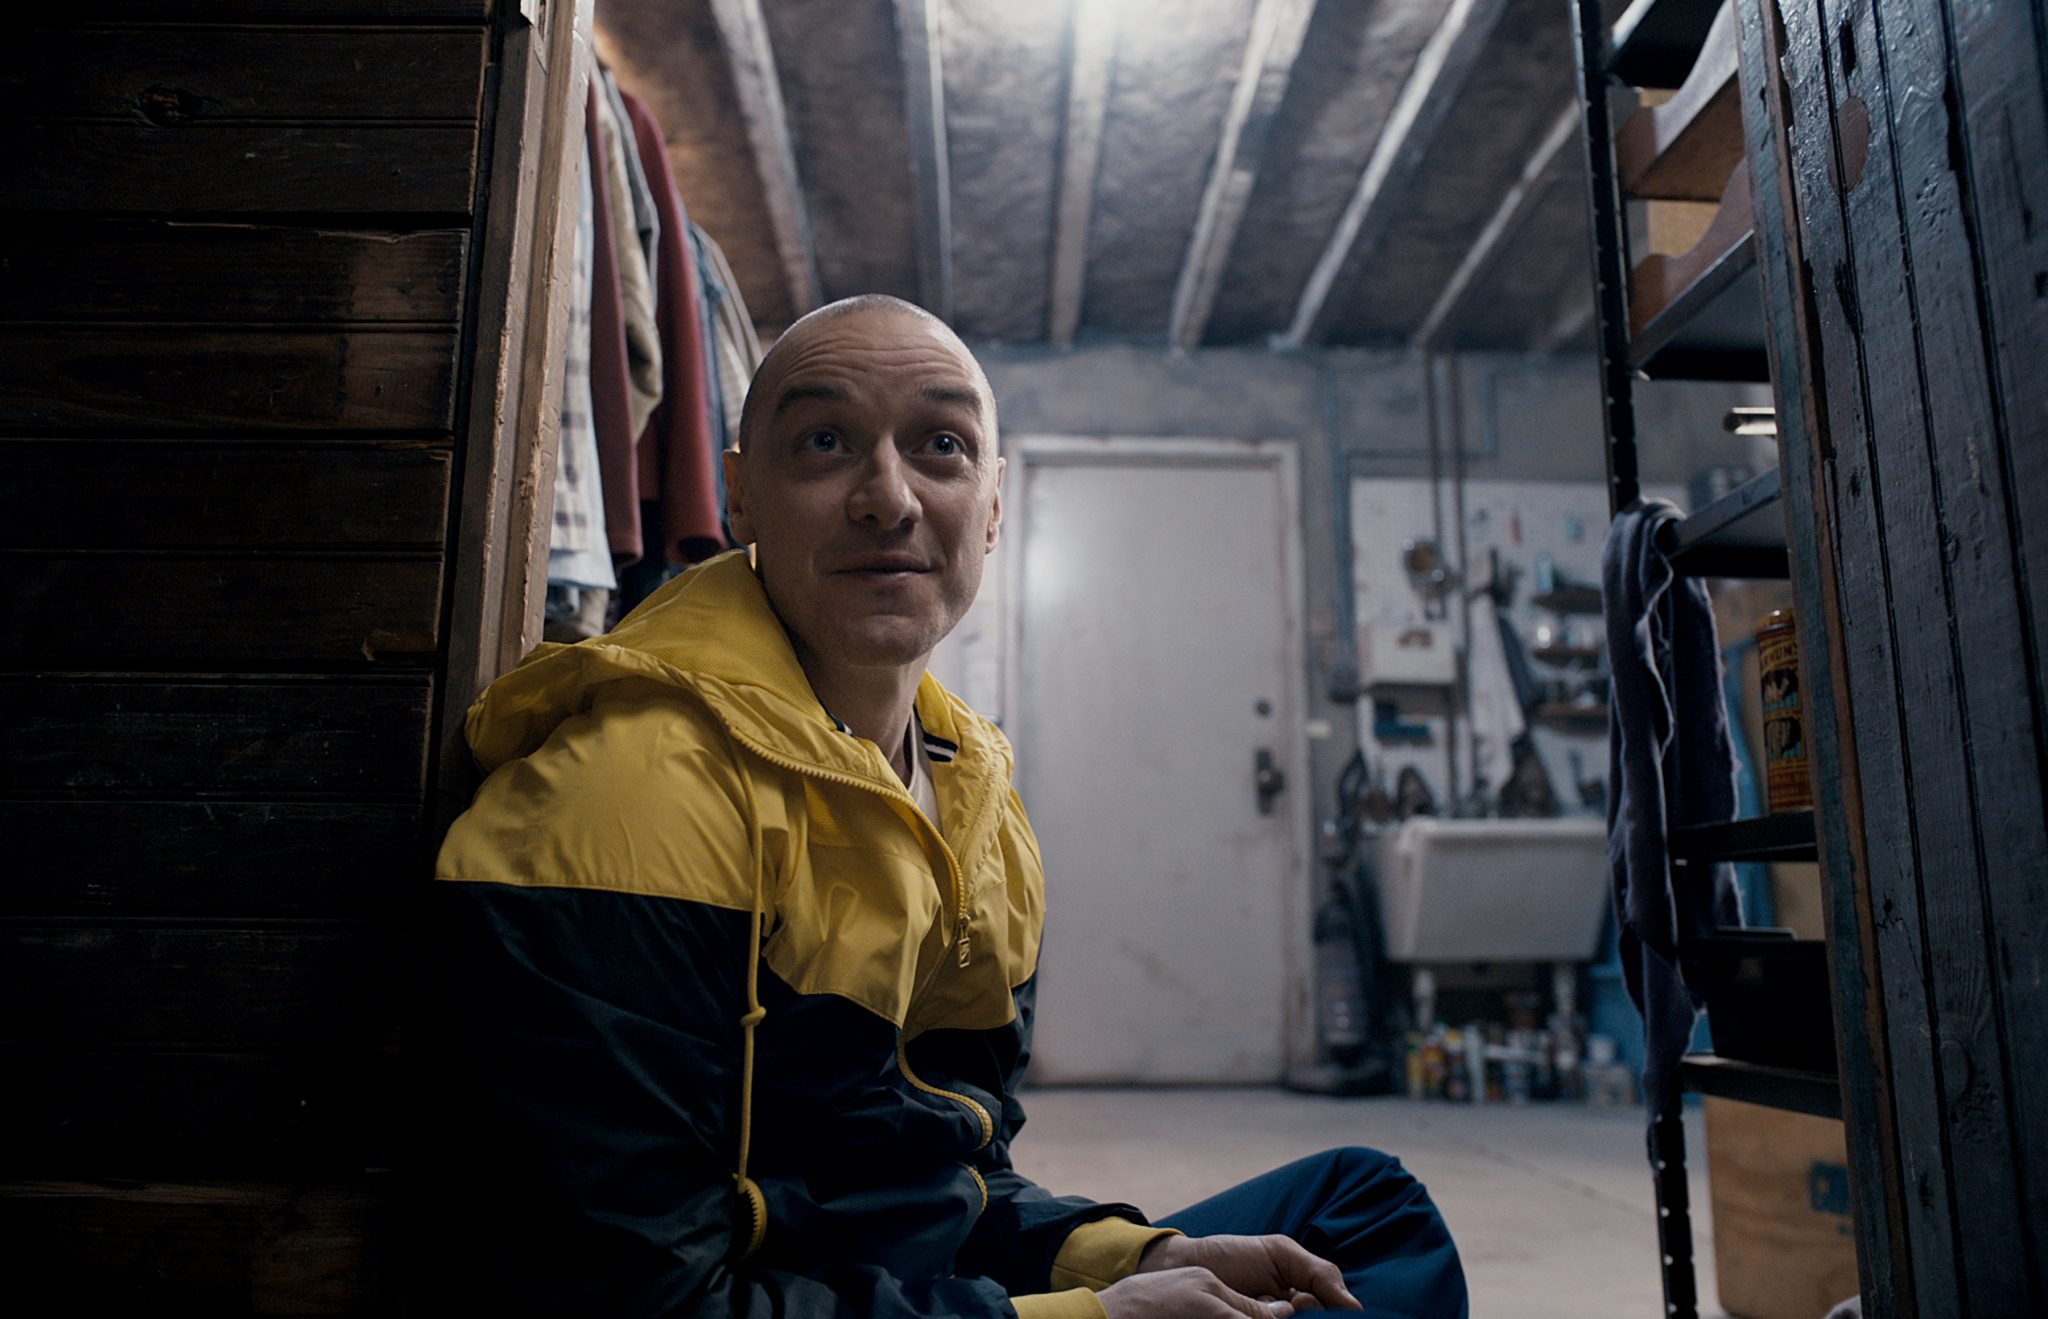 'Split' Is Weirdly Slow And Infuriating Schlock, Even For Shyamalan